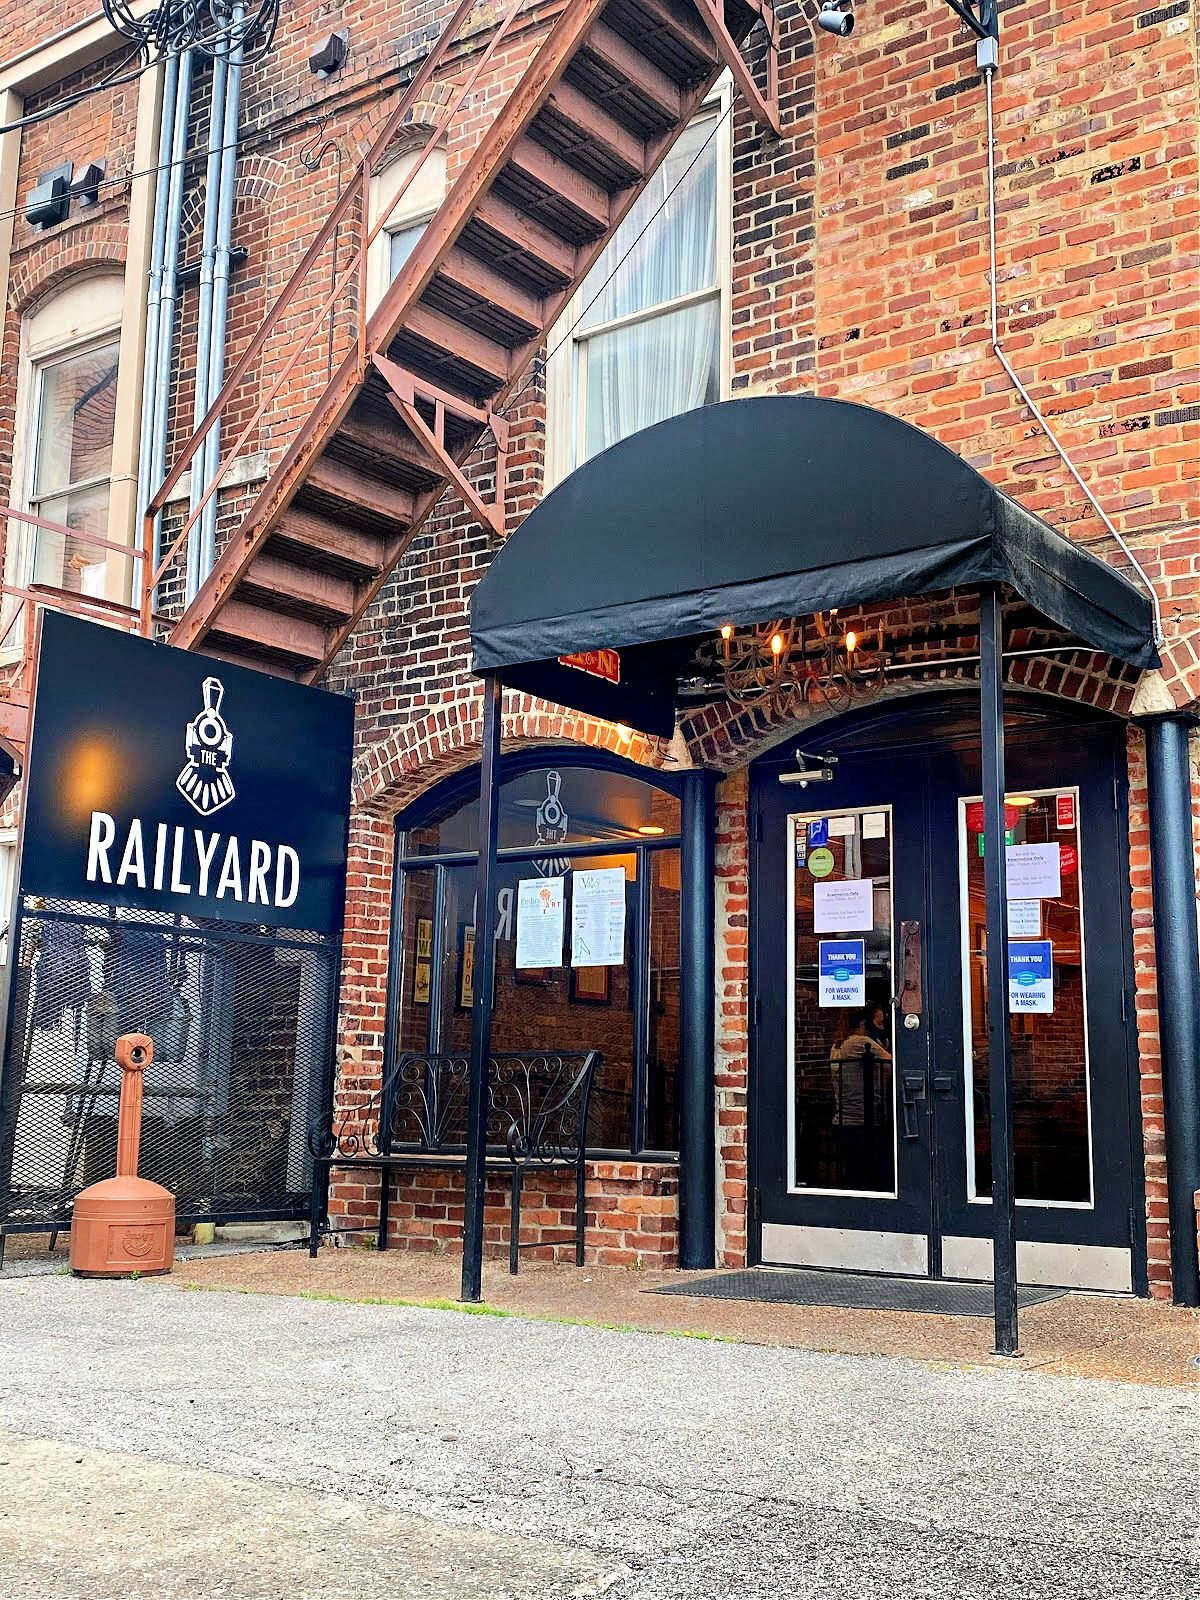 The back entrance of The Railyard in Decatur.